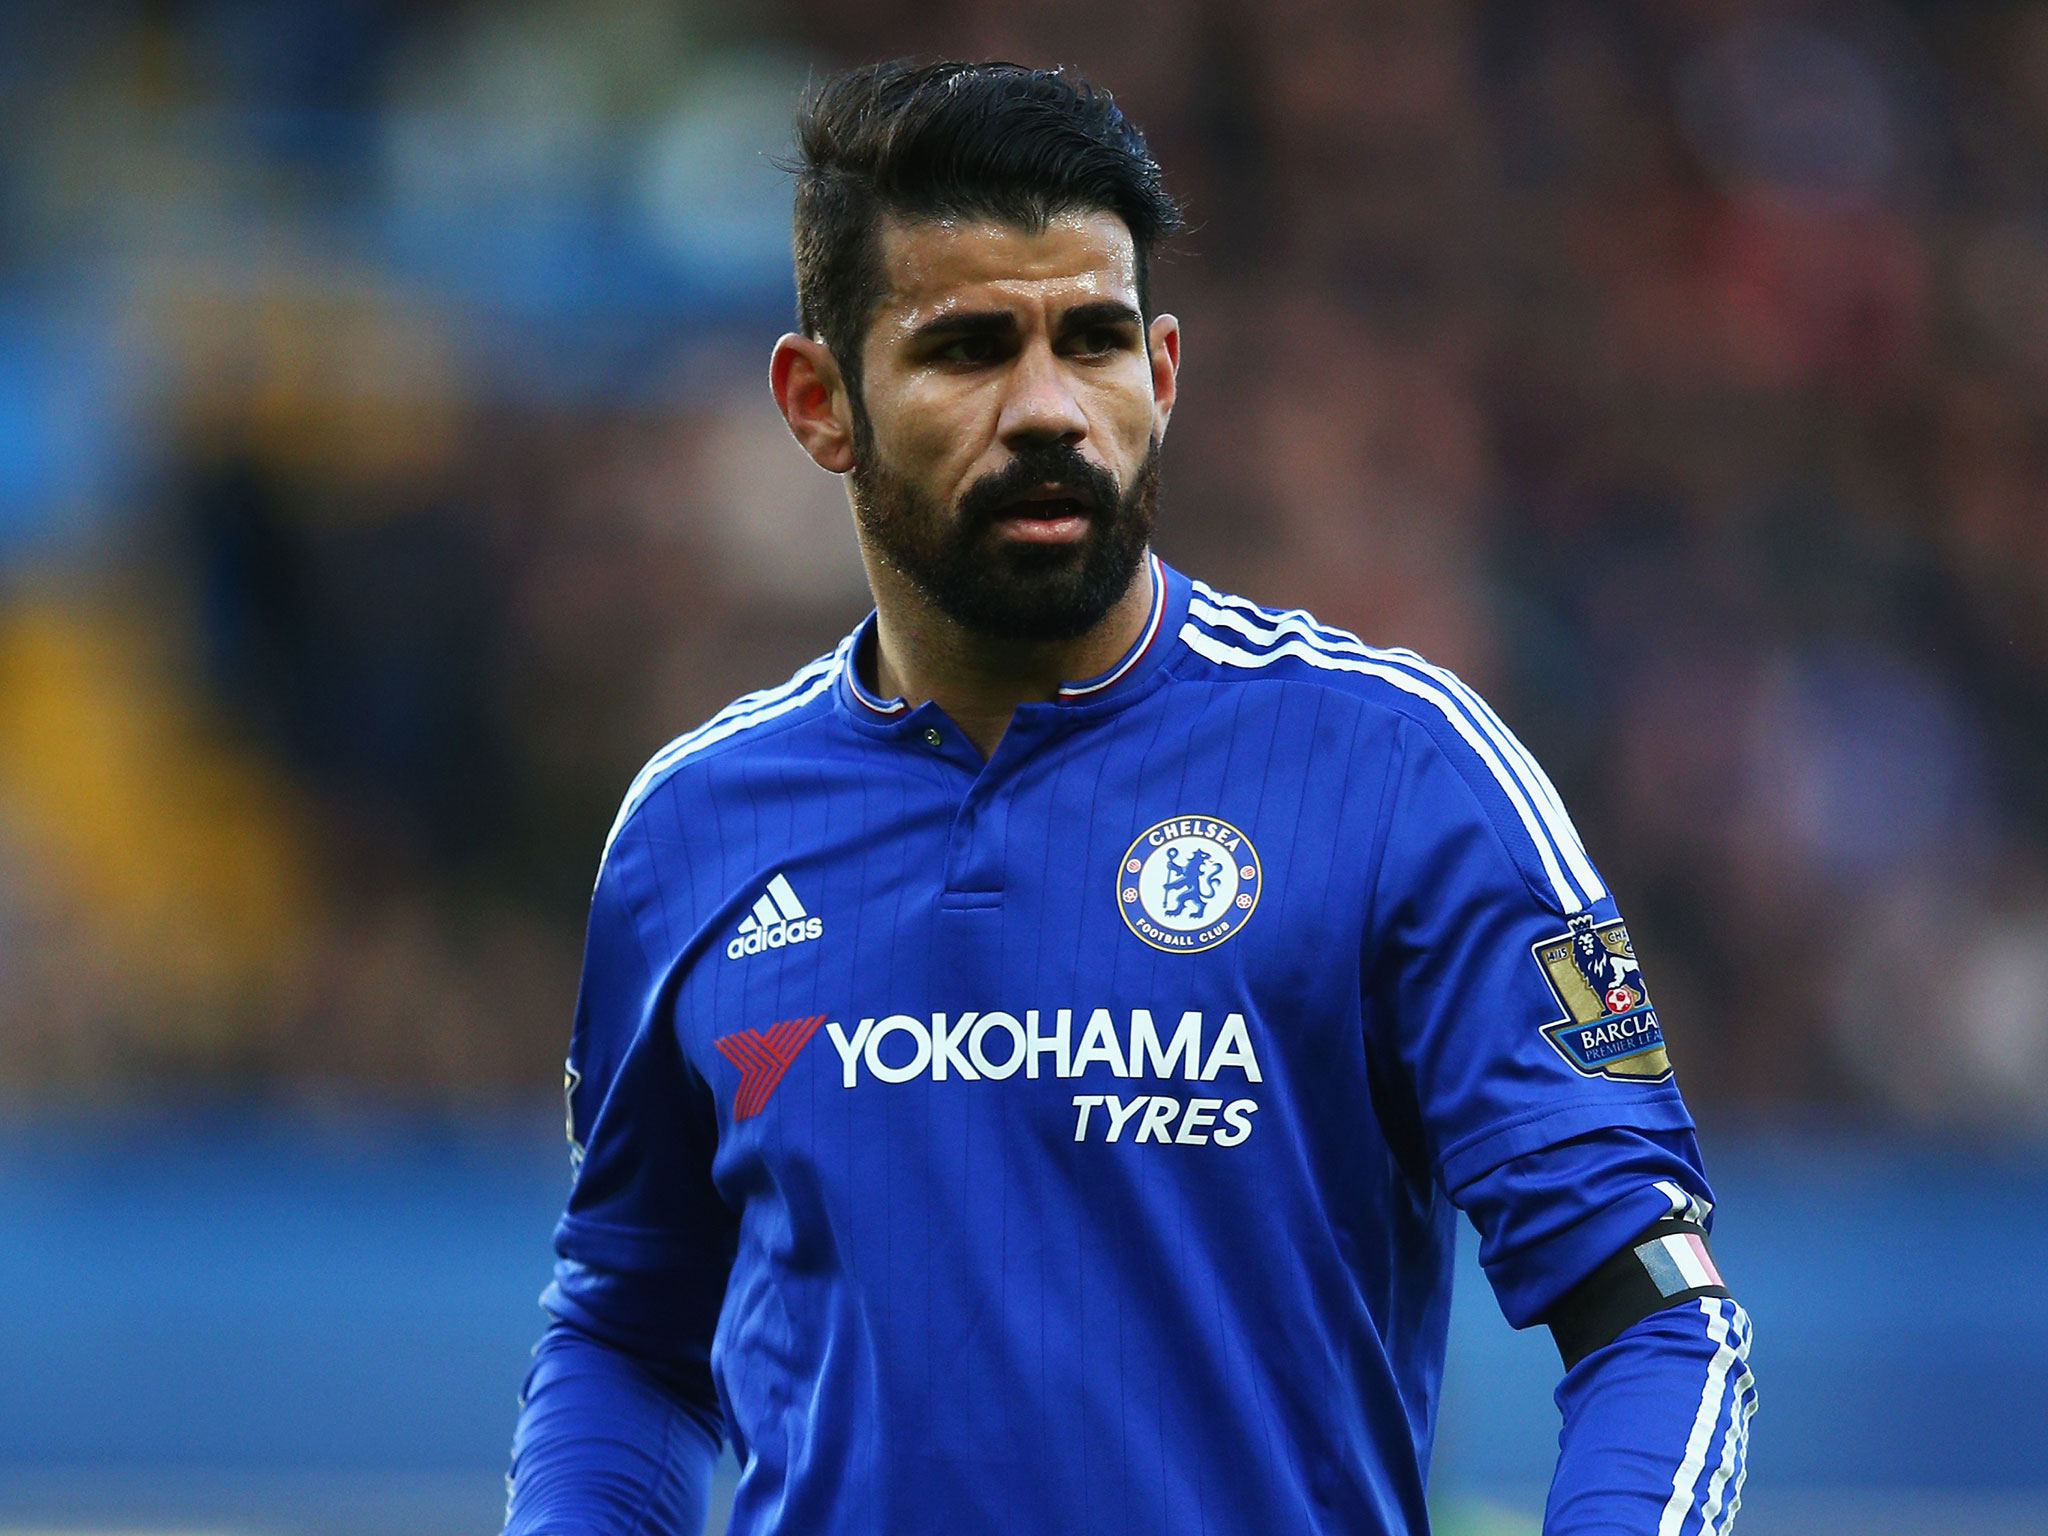 Chelsea Vs Bournemouth: Diego Costa Is 'impulsive', Making Him A